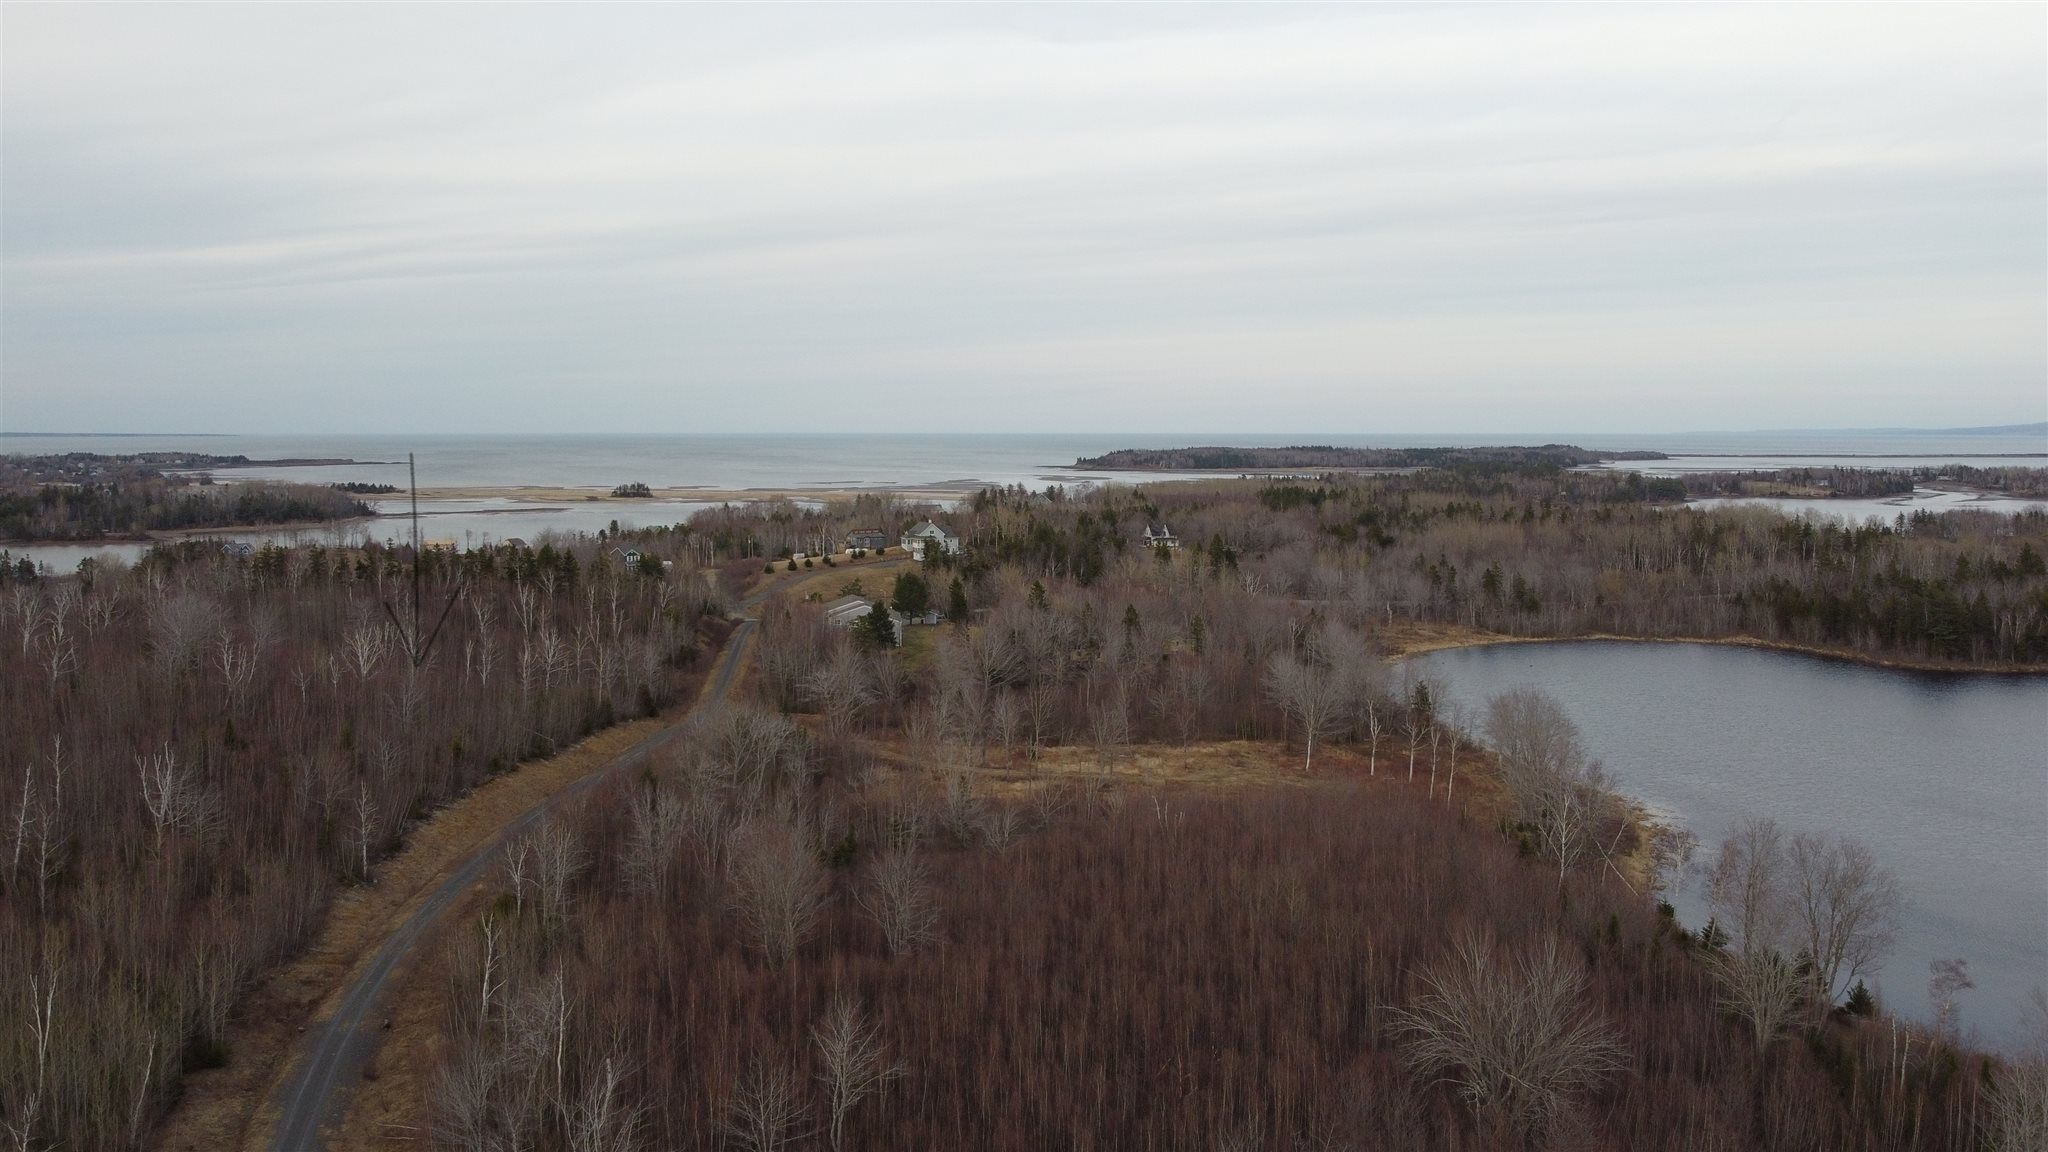 Main Photo: Lot 14 Lakeside Drive in Little Harbour: 108-Rural Pictou County Vacant Land for sale (Northern Region)  : MLS®# 202109719